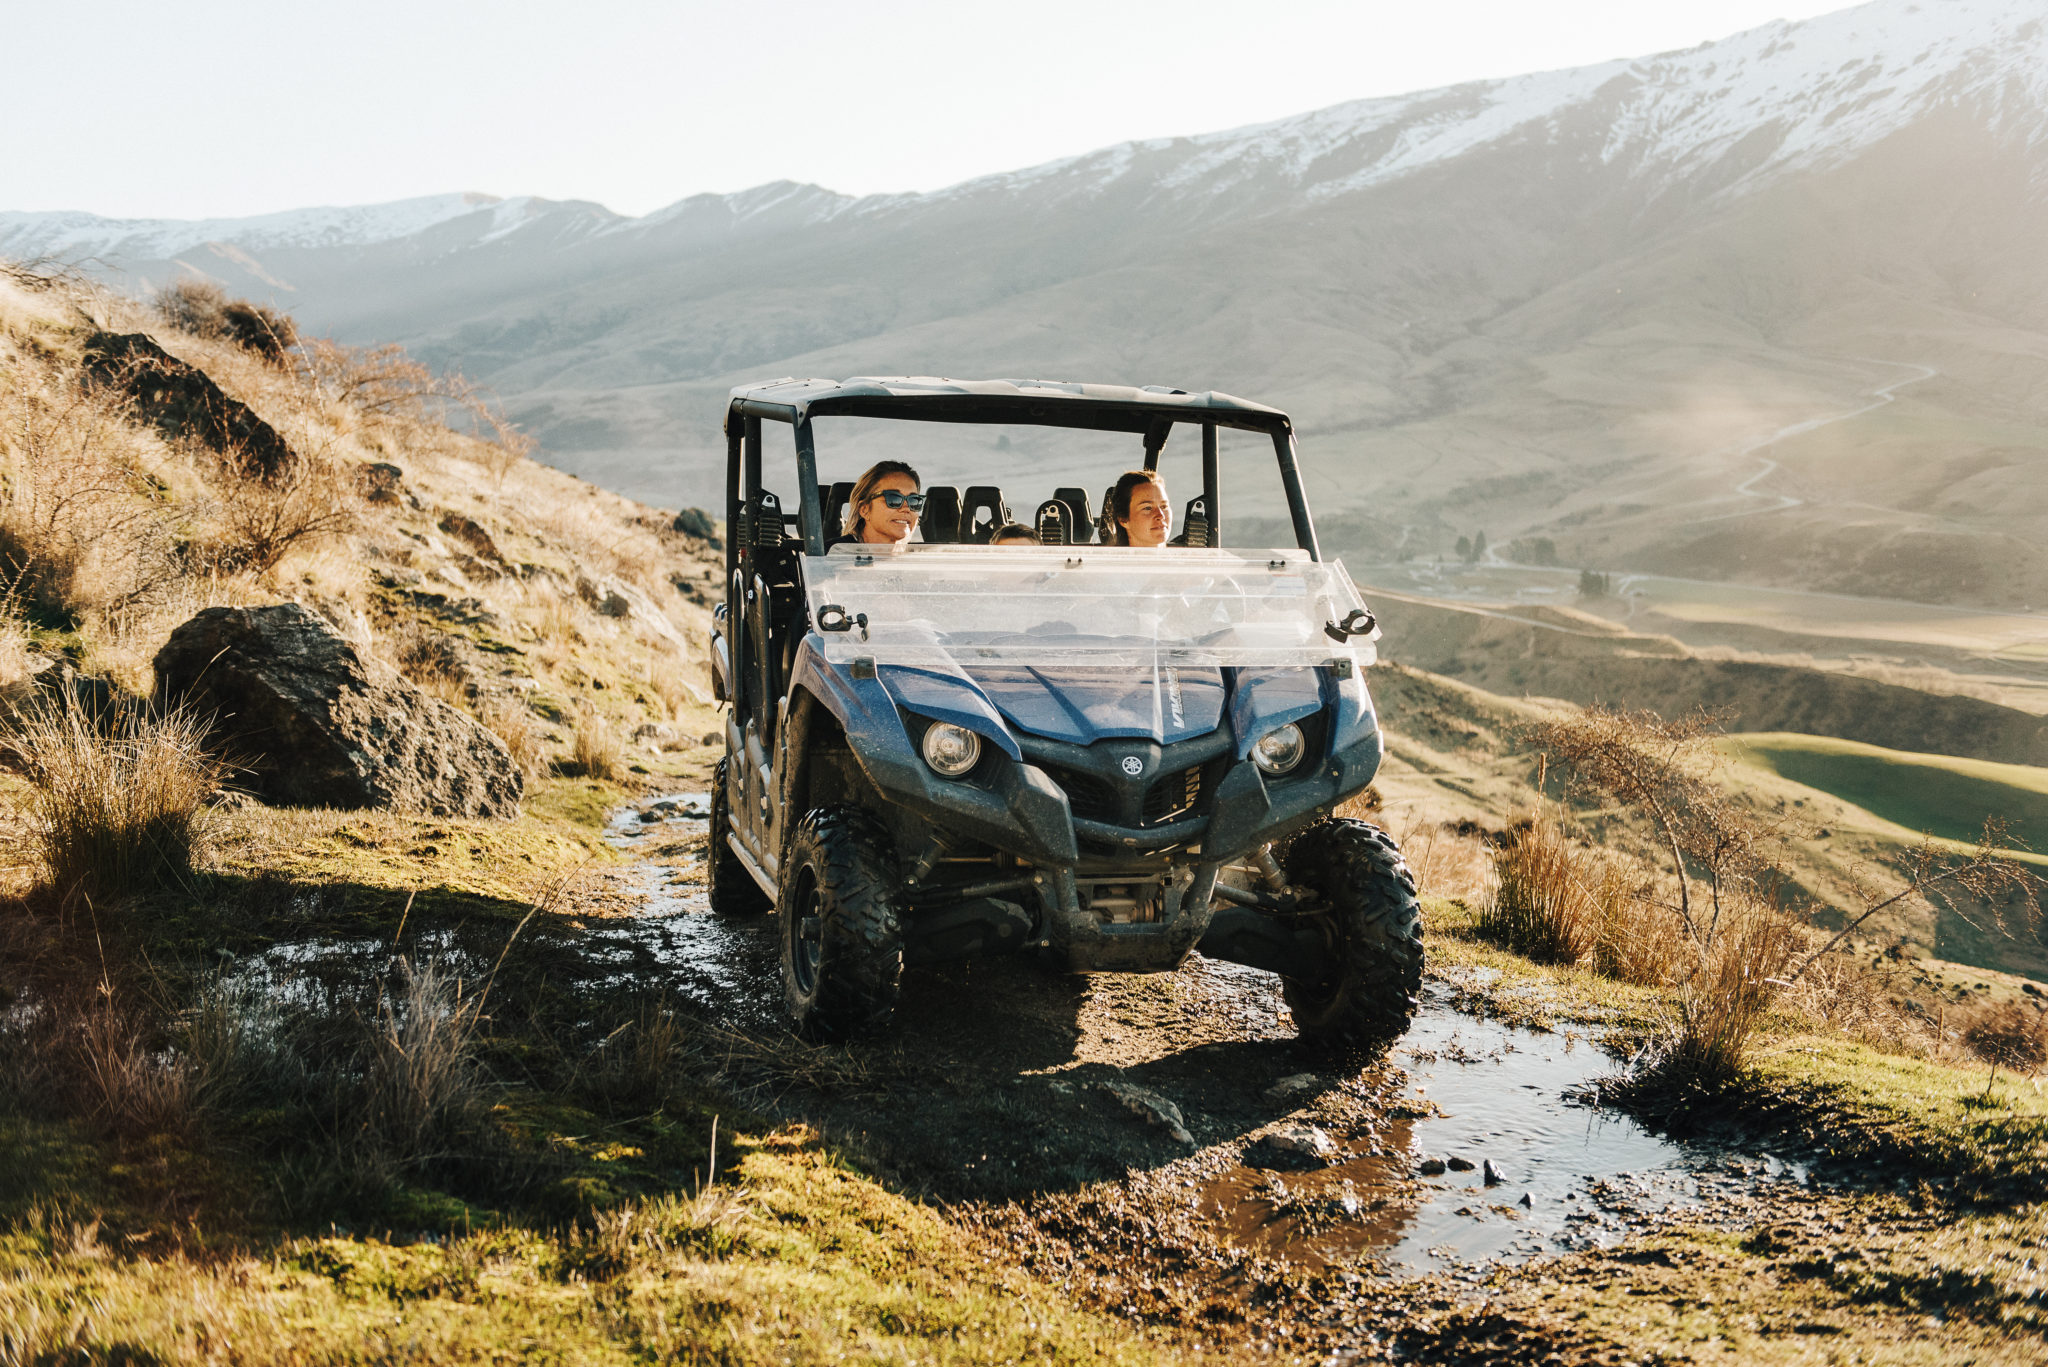 Wanaka 6-seater 4×4 Buggy Rides in New Zealand